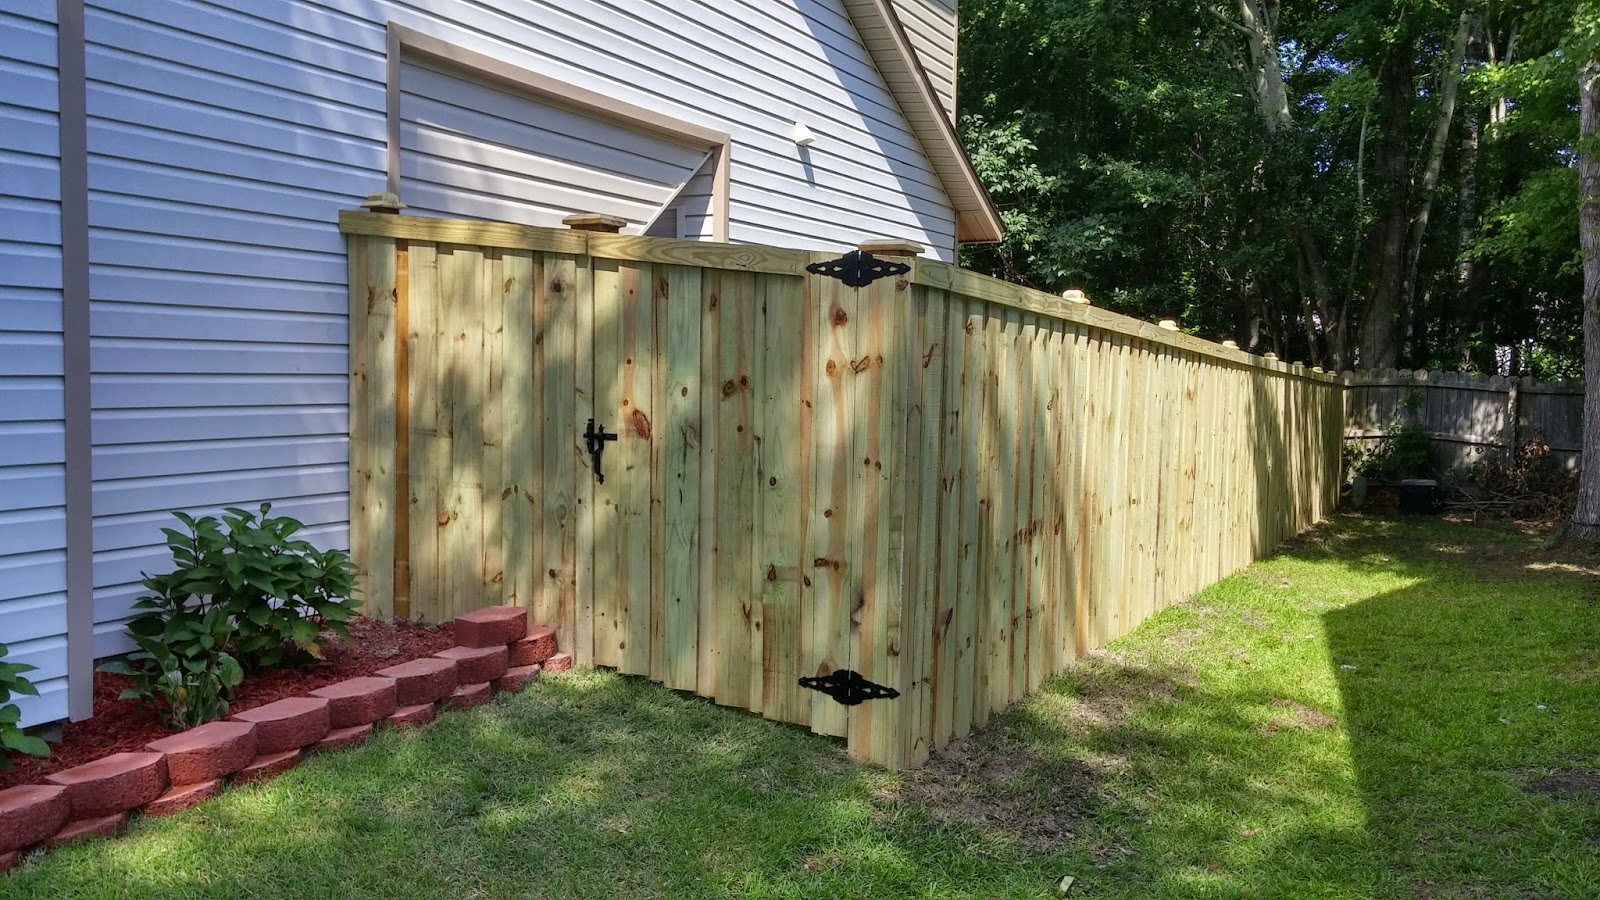 Installed Approx 139 Of 6 Treated Wood Privacy Fence